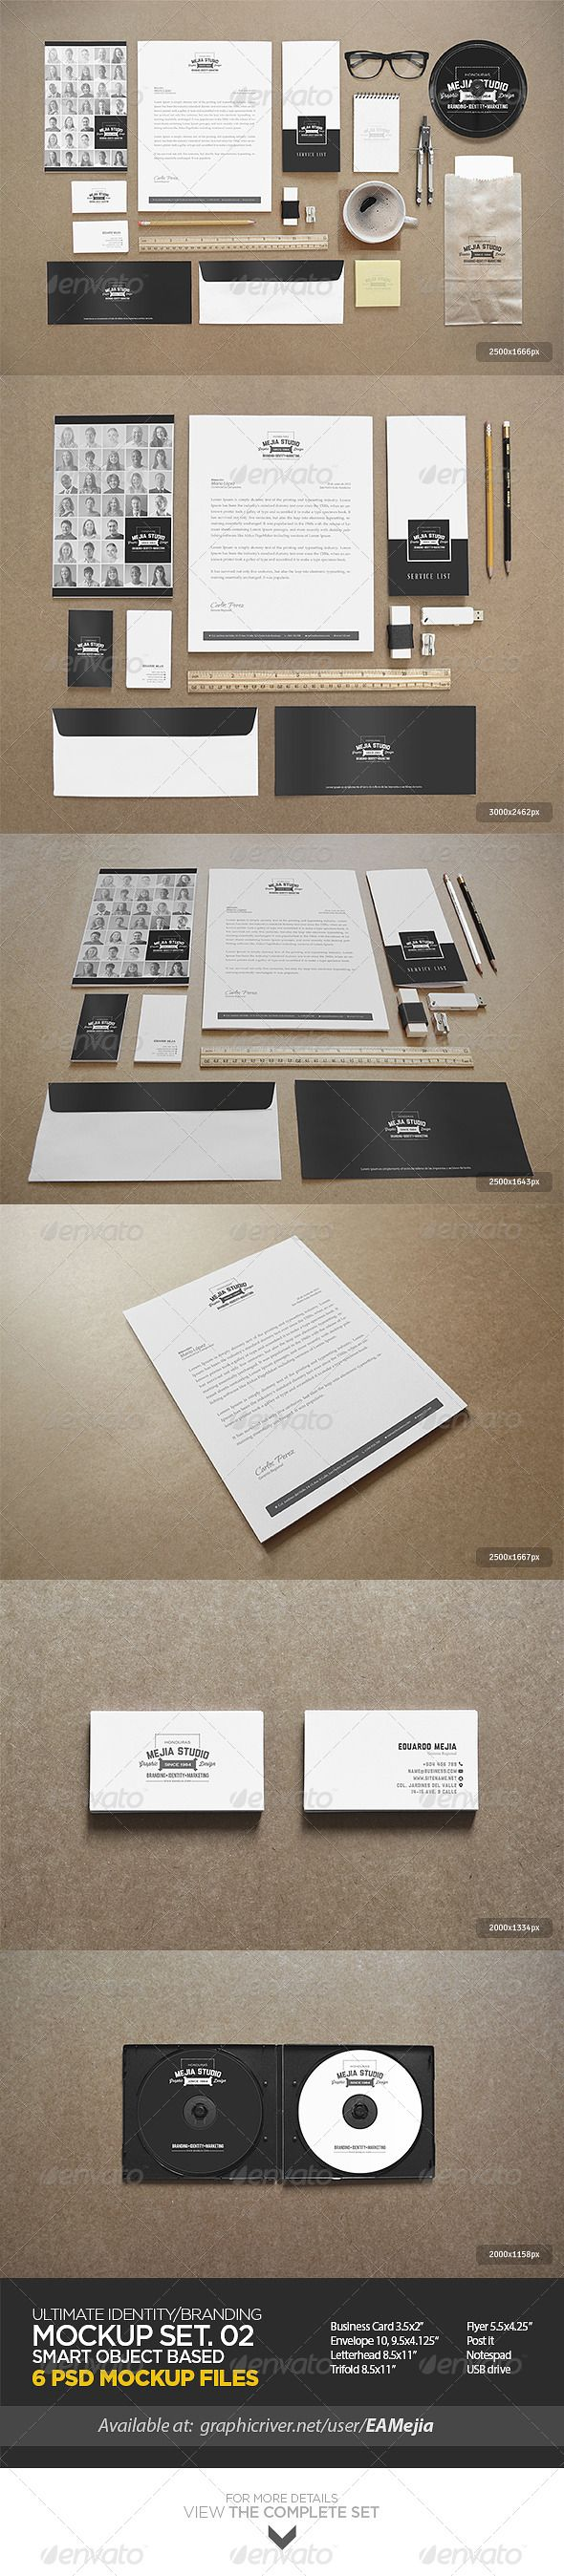 Ultimate Identity / Branding Mock-Up Set 02 - Print Product Mock-Ups